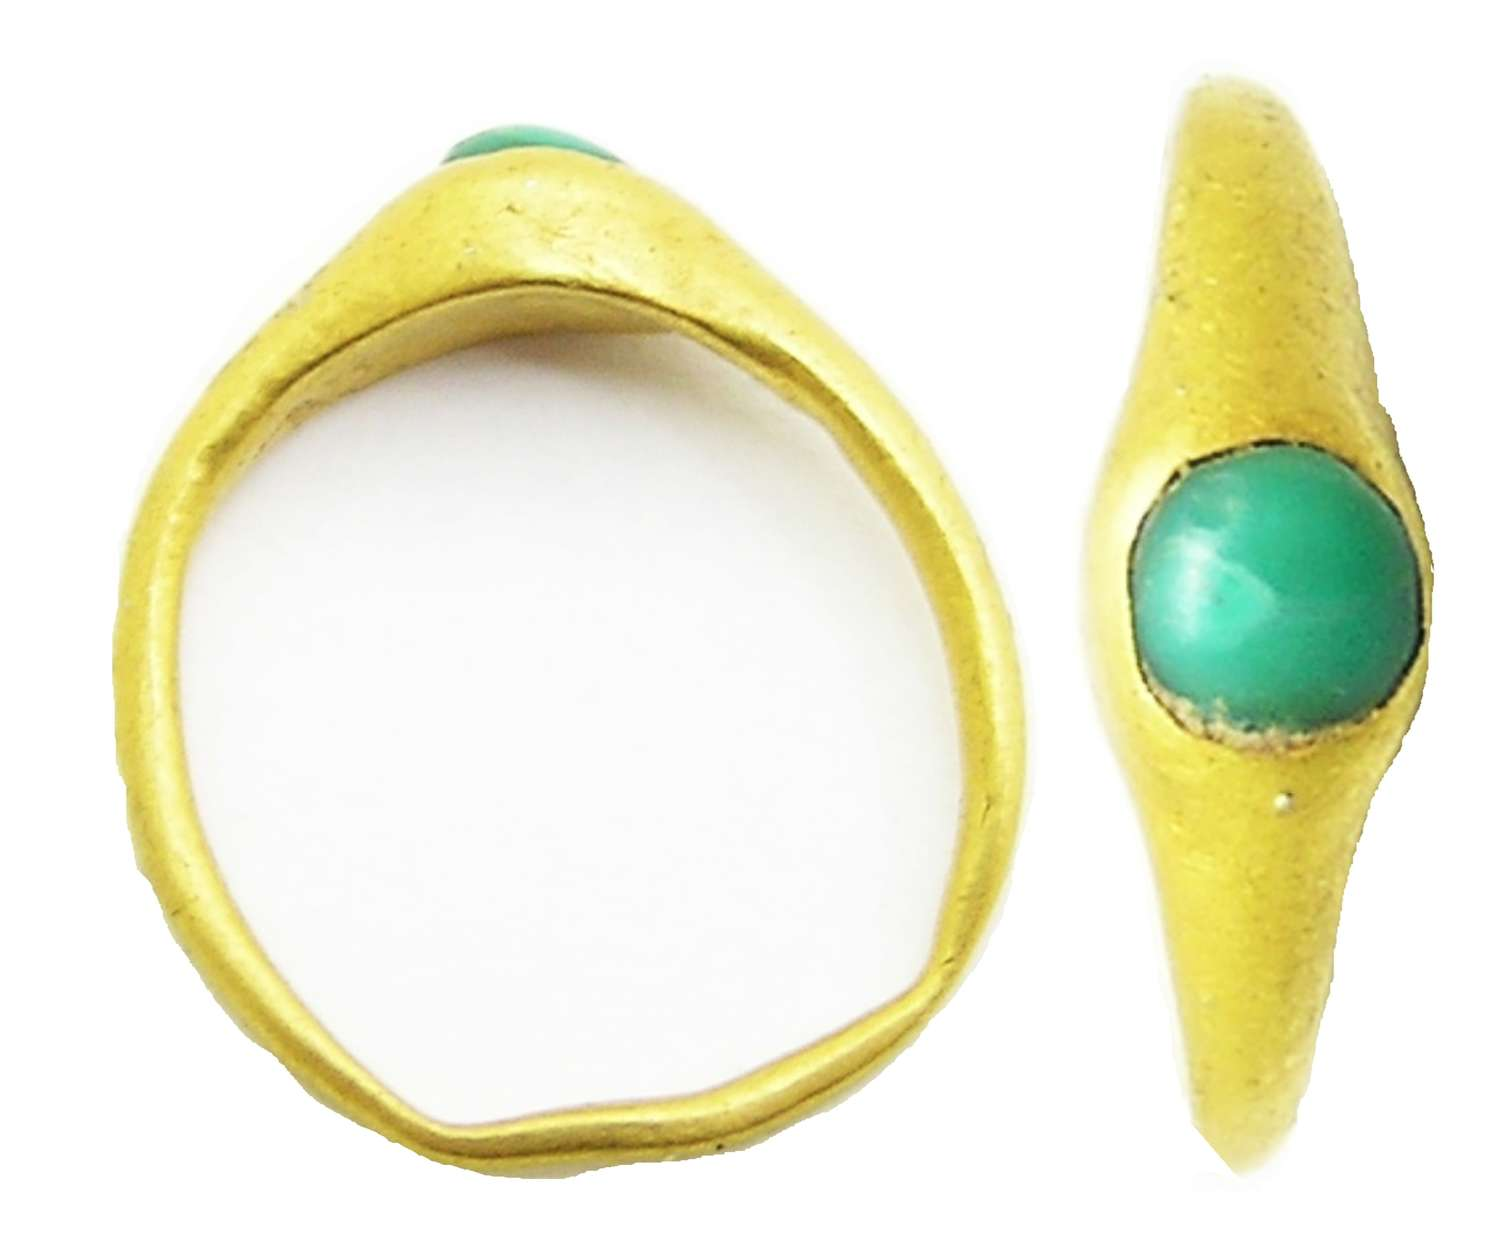 Medieval Gold & Turquoise Stirrup Ring